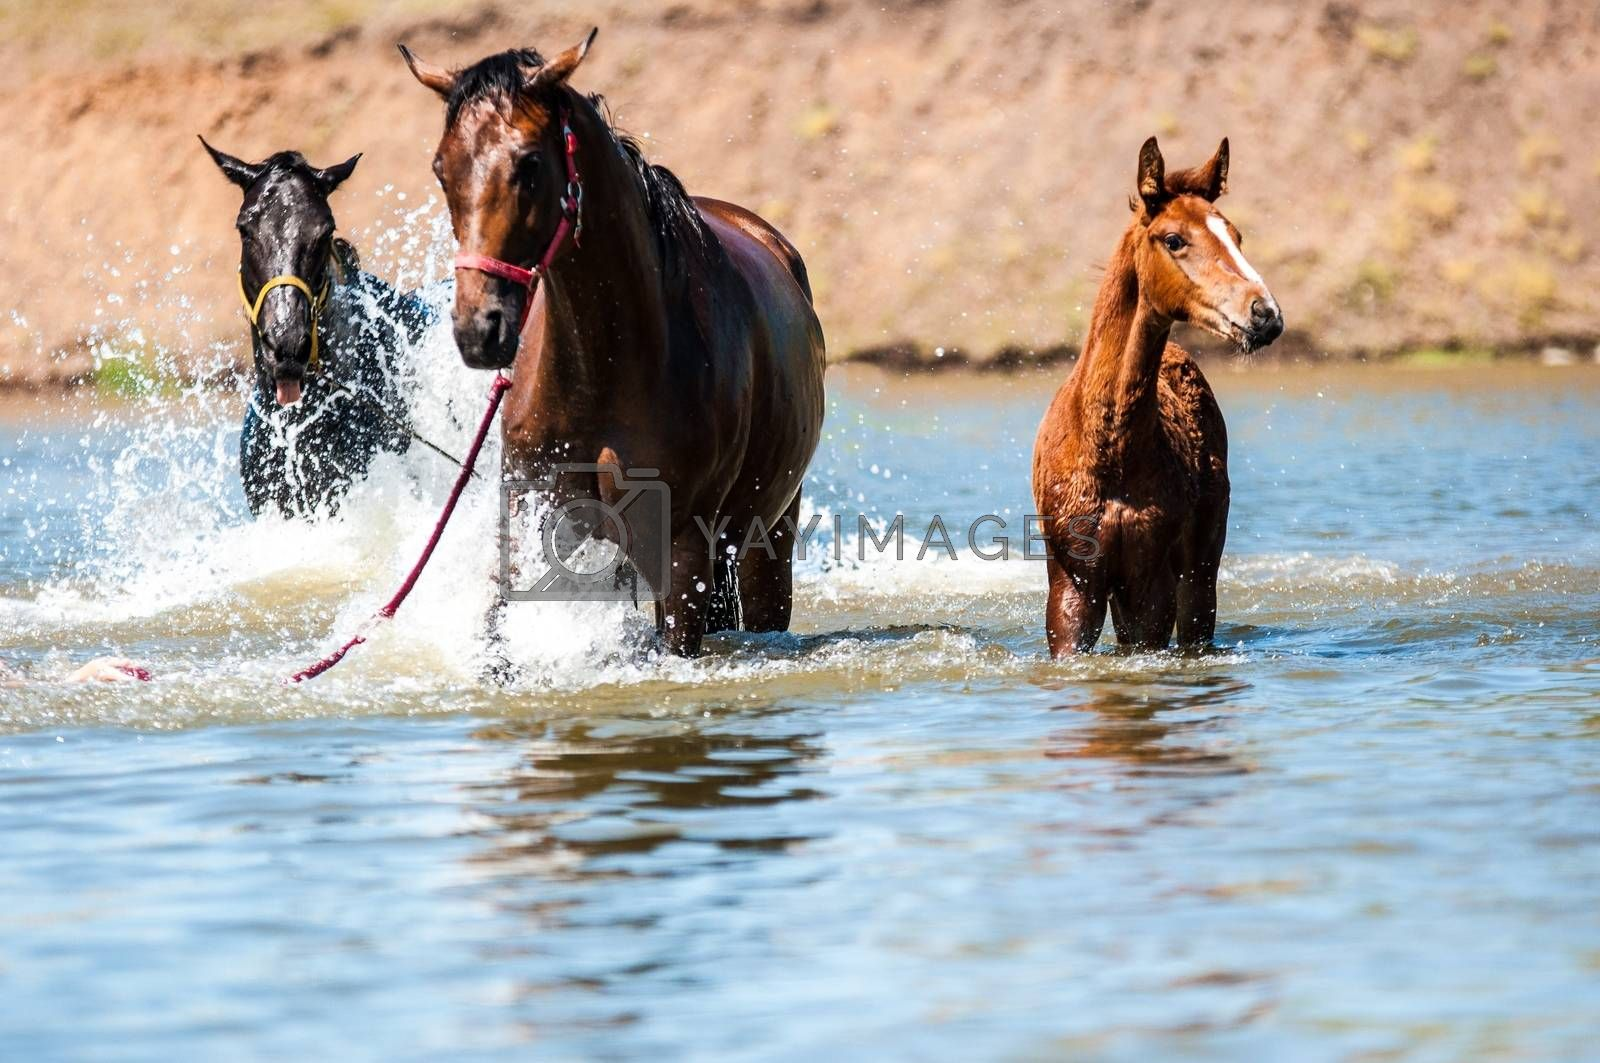 Horses in water on a hot summer day